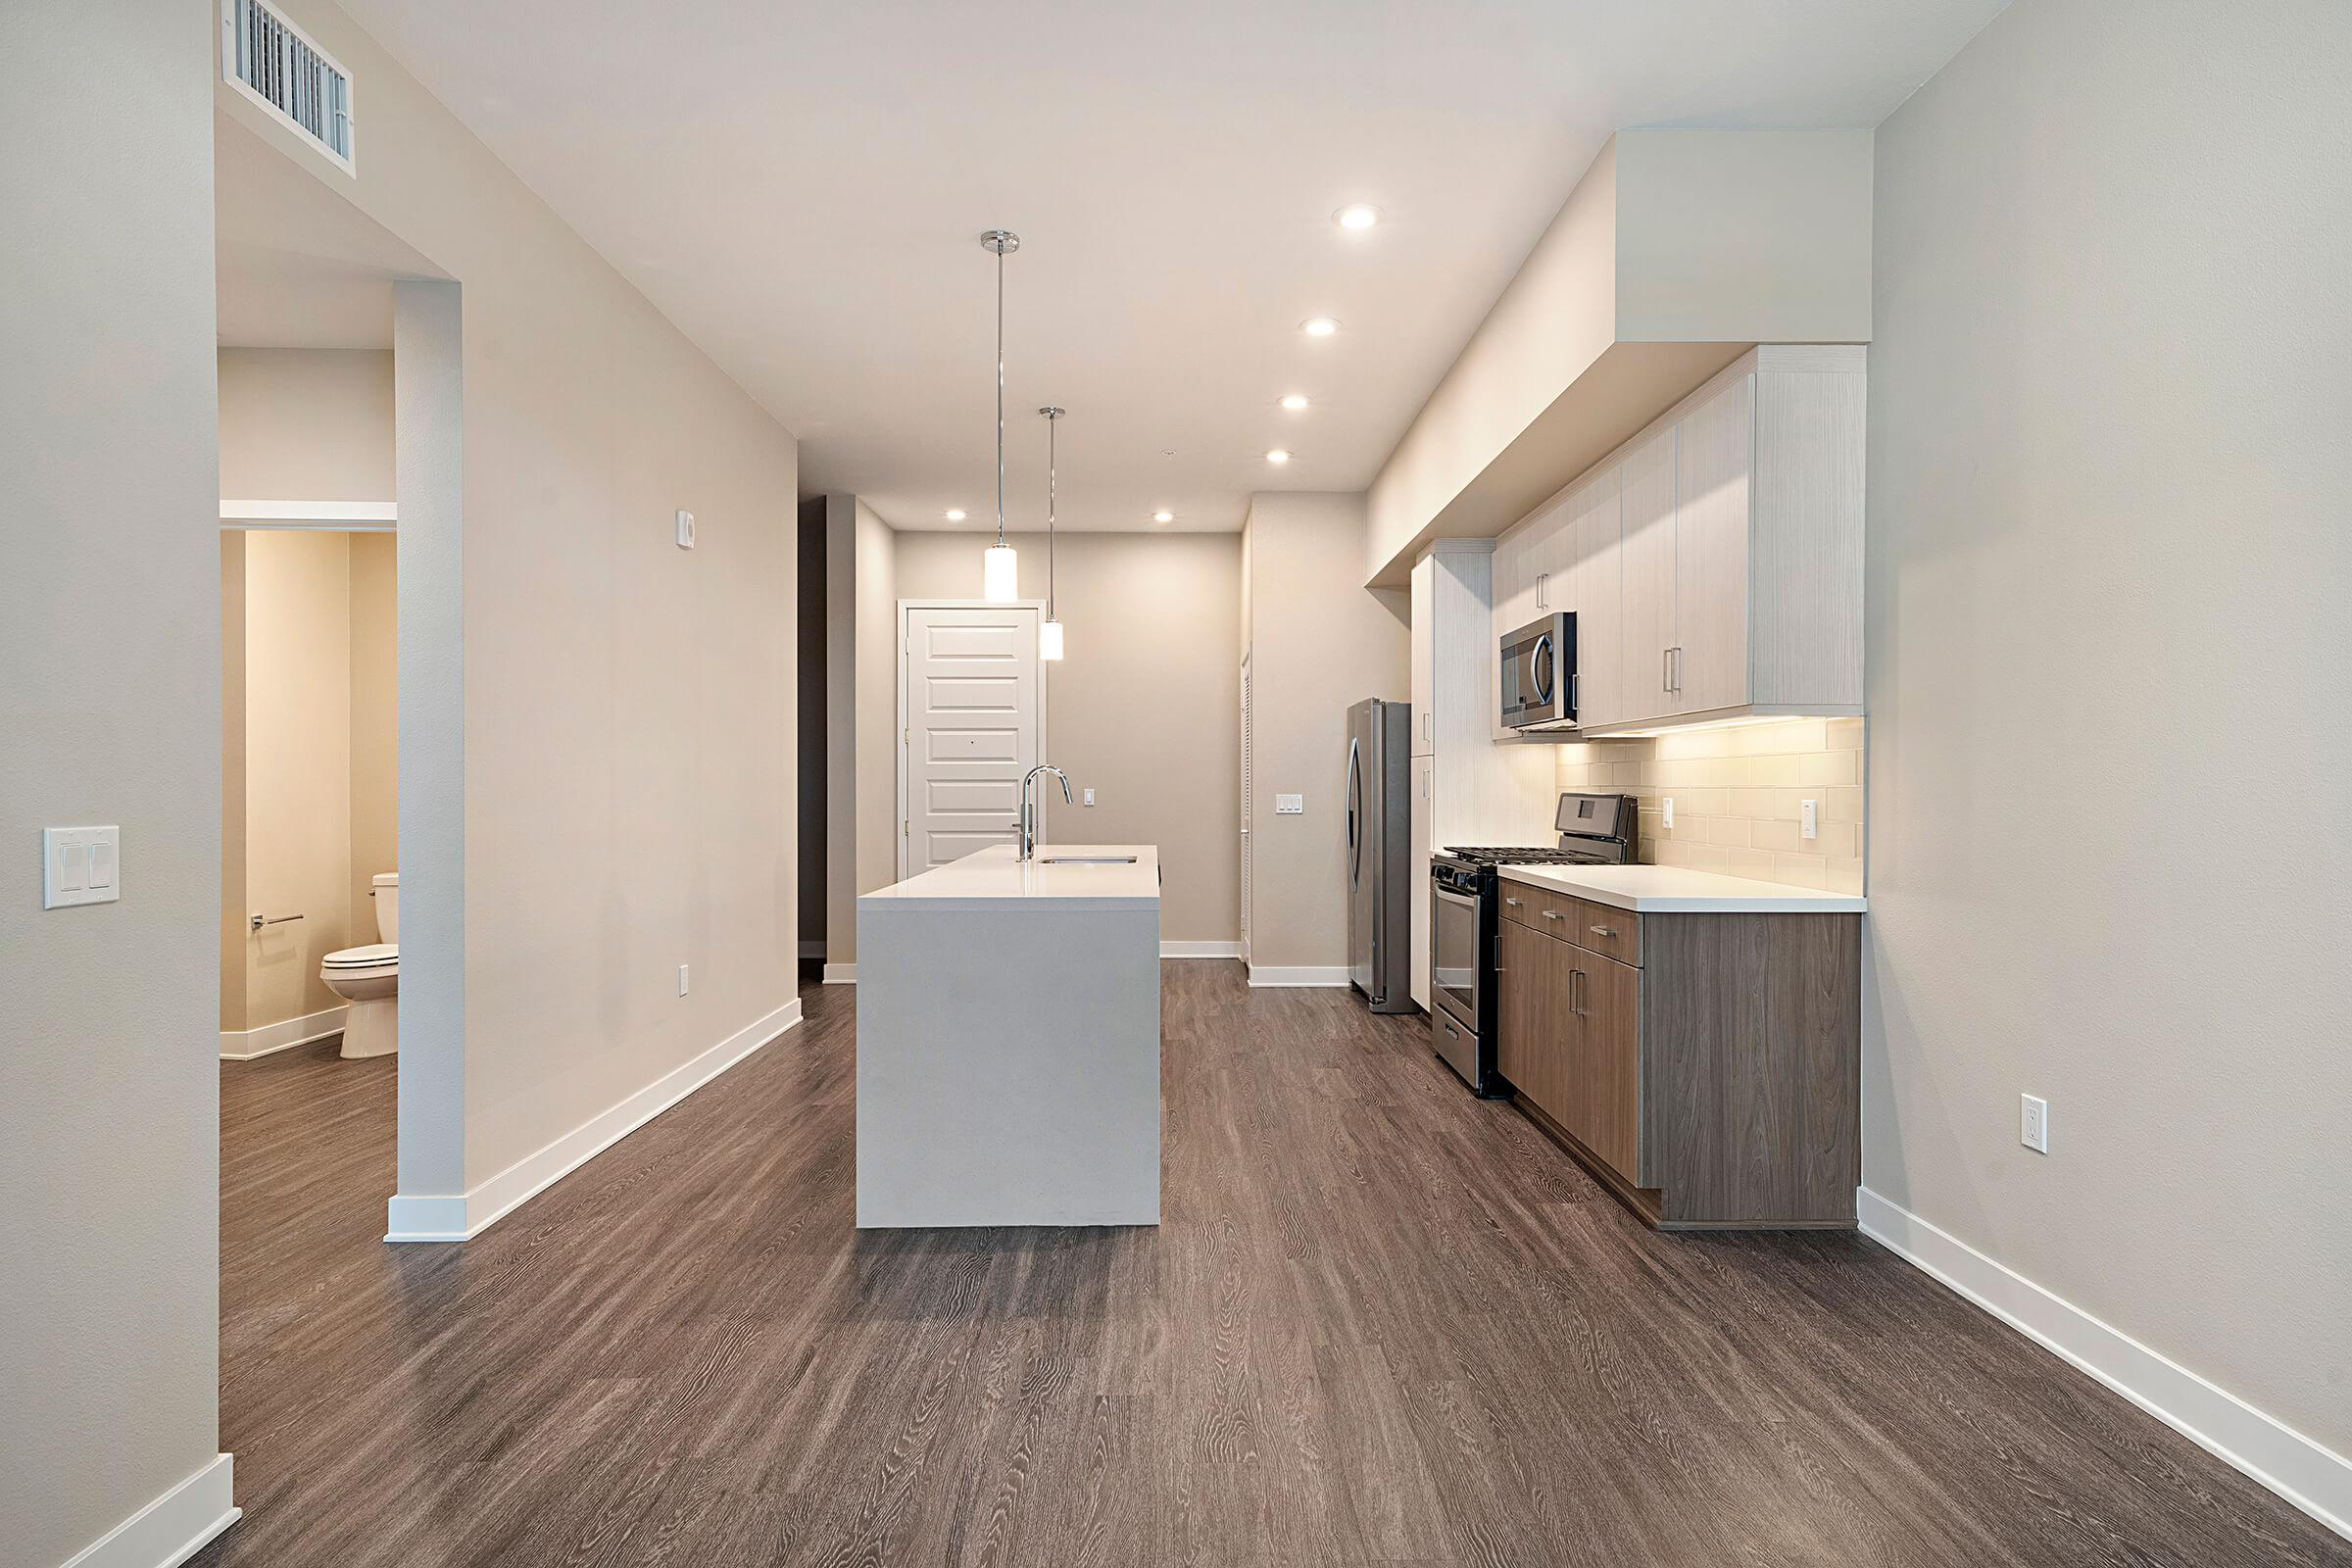 Unfurnished dining room and kitchen with wooden floors